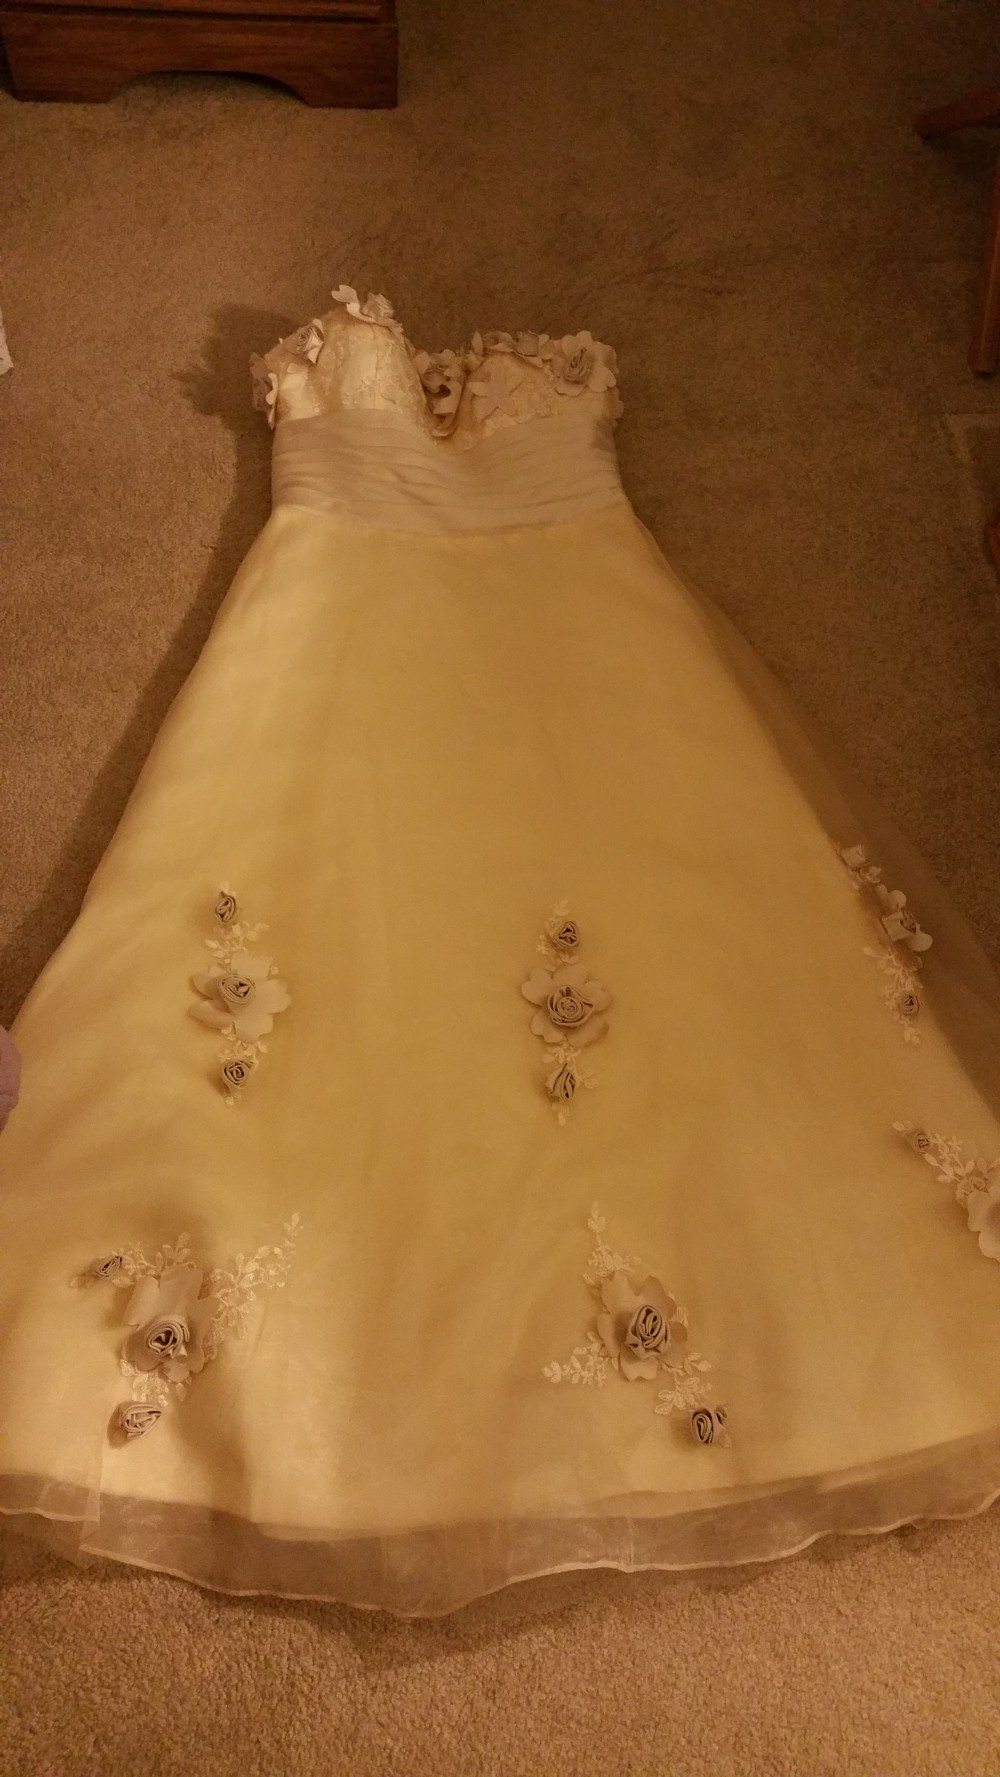 Tb dress new wedding dress on sale 31 off for Wedding dresses lowell ma